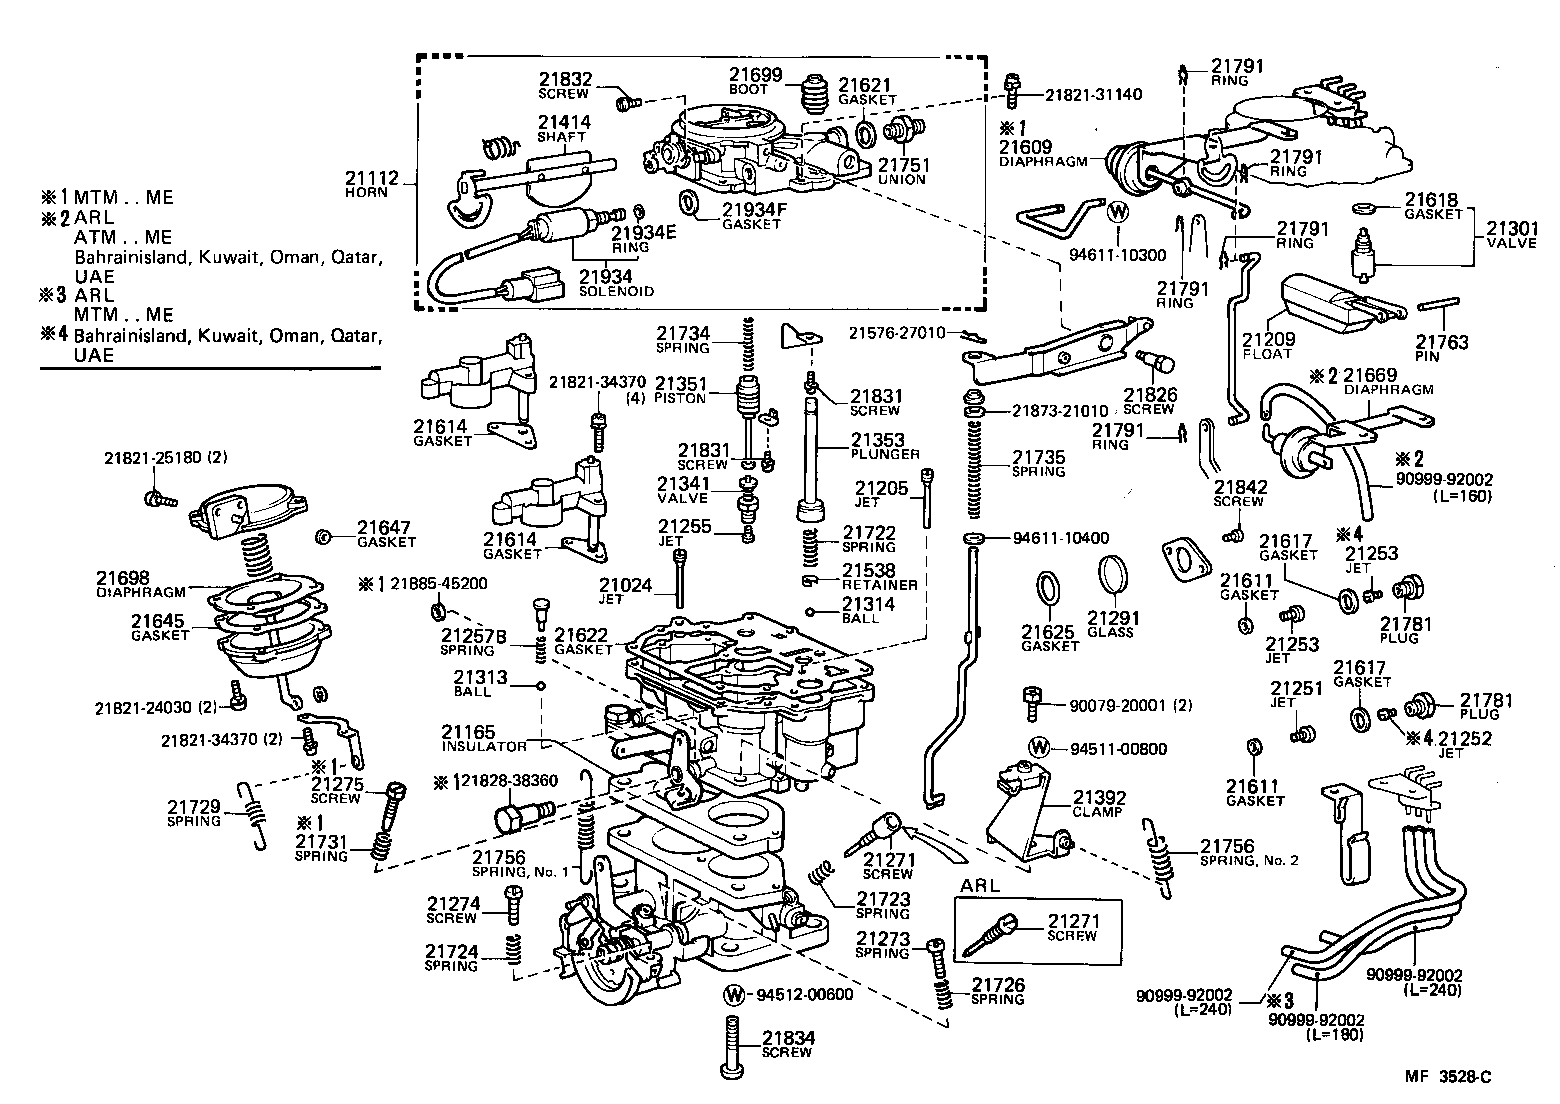 Diagram In Pictures Database  Toyota 22r Engine Parts